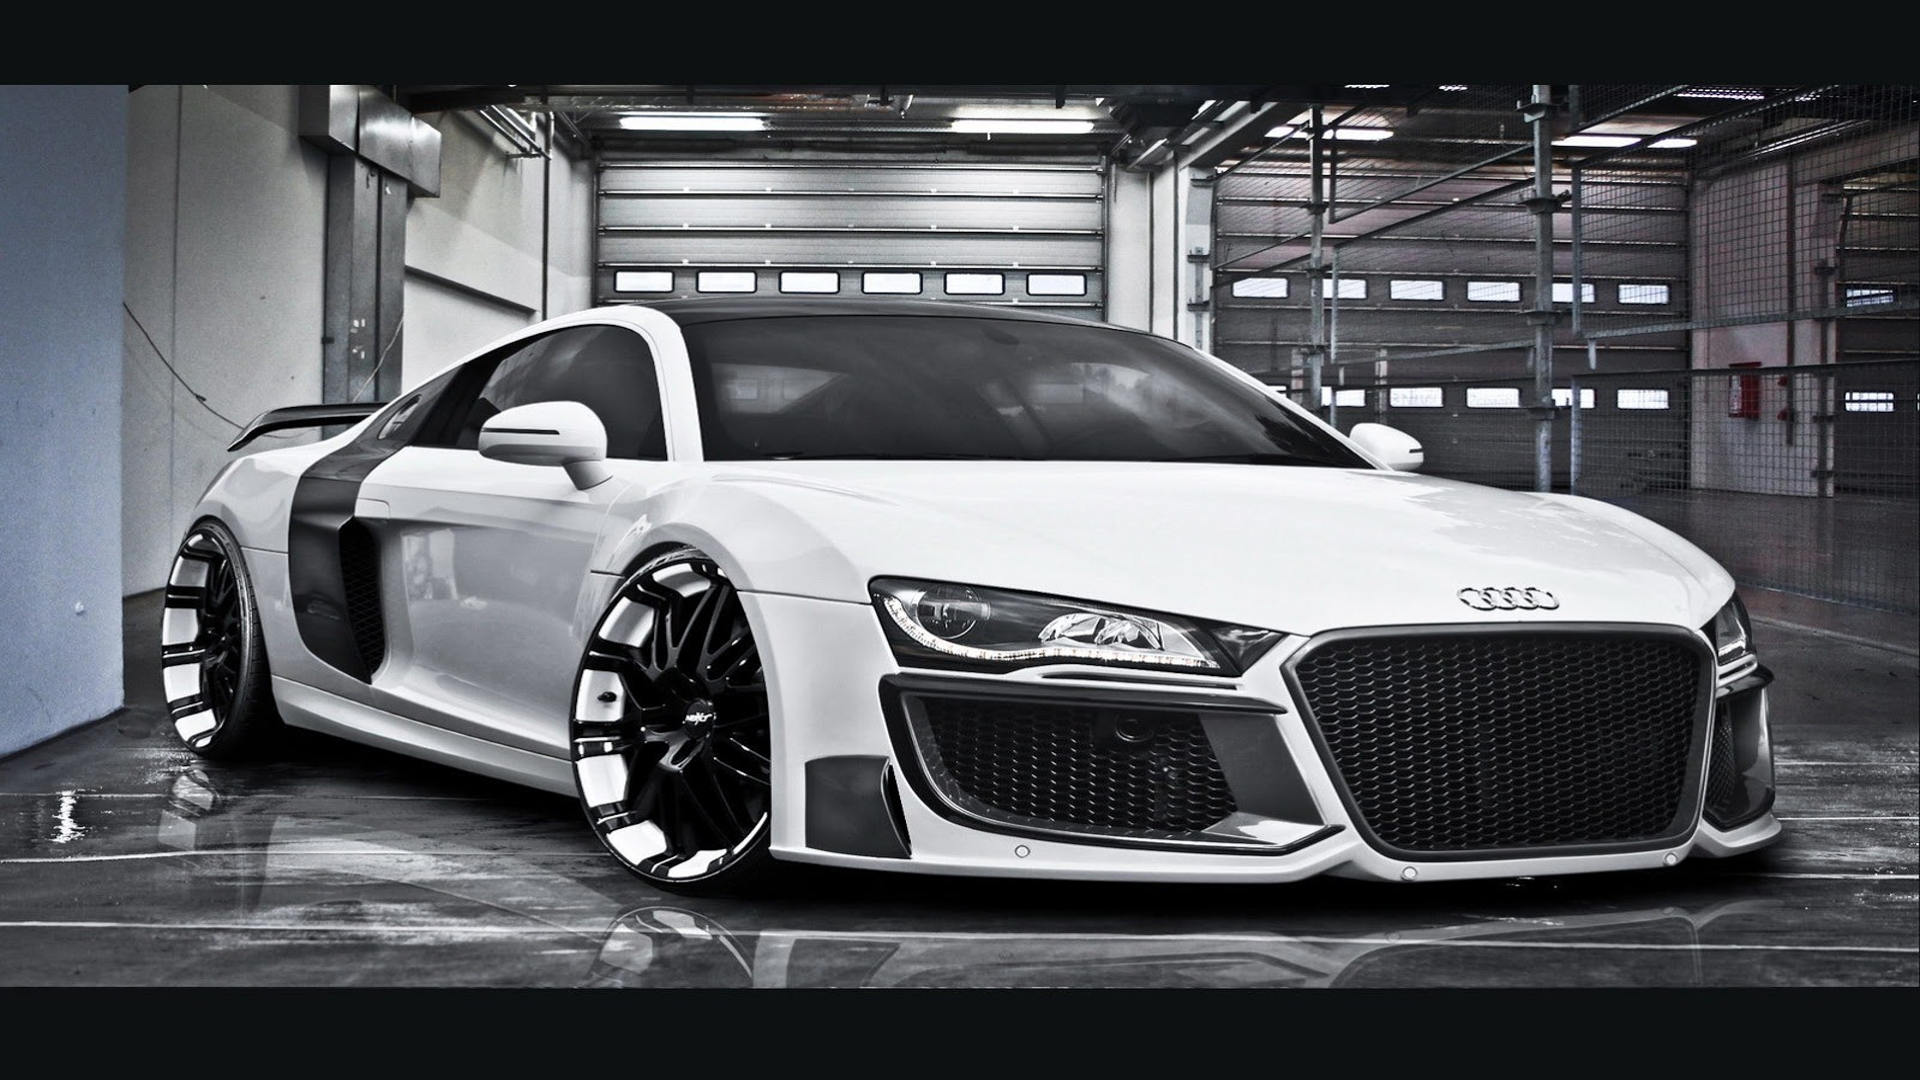 Audi Cars 2015 31 Car Desktop Wallpaper